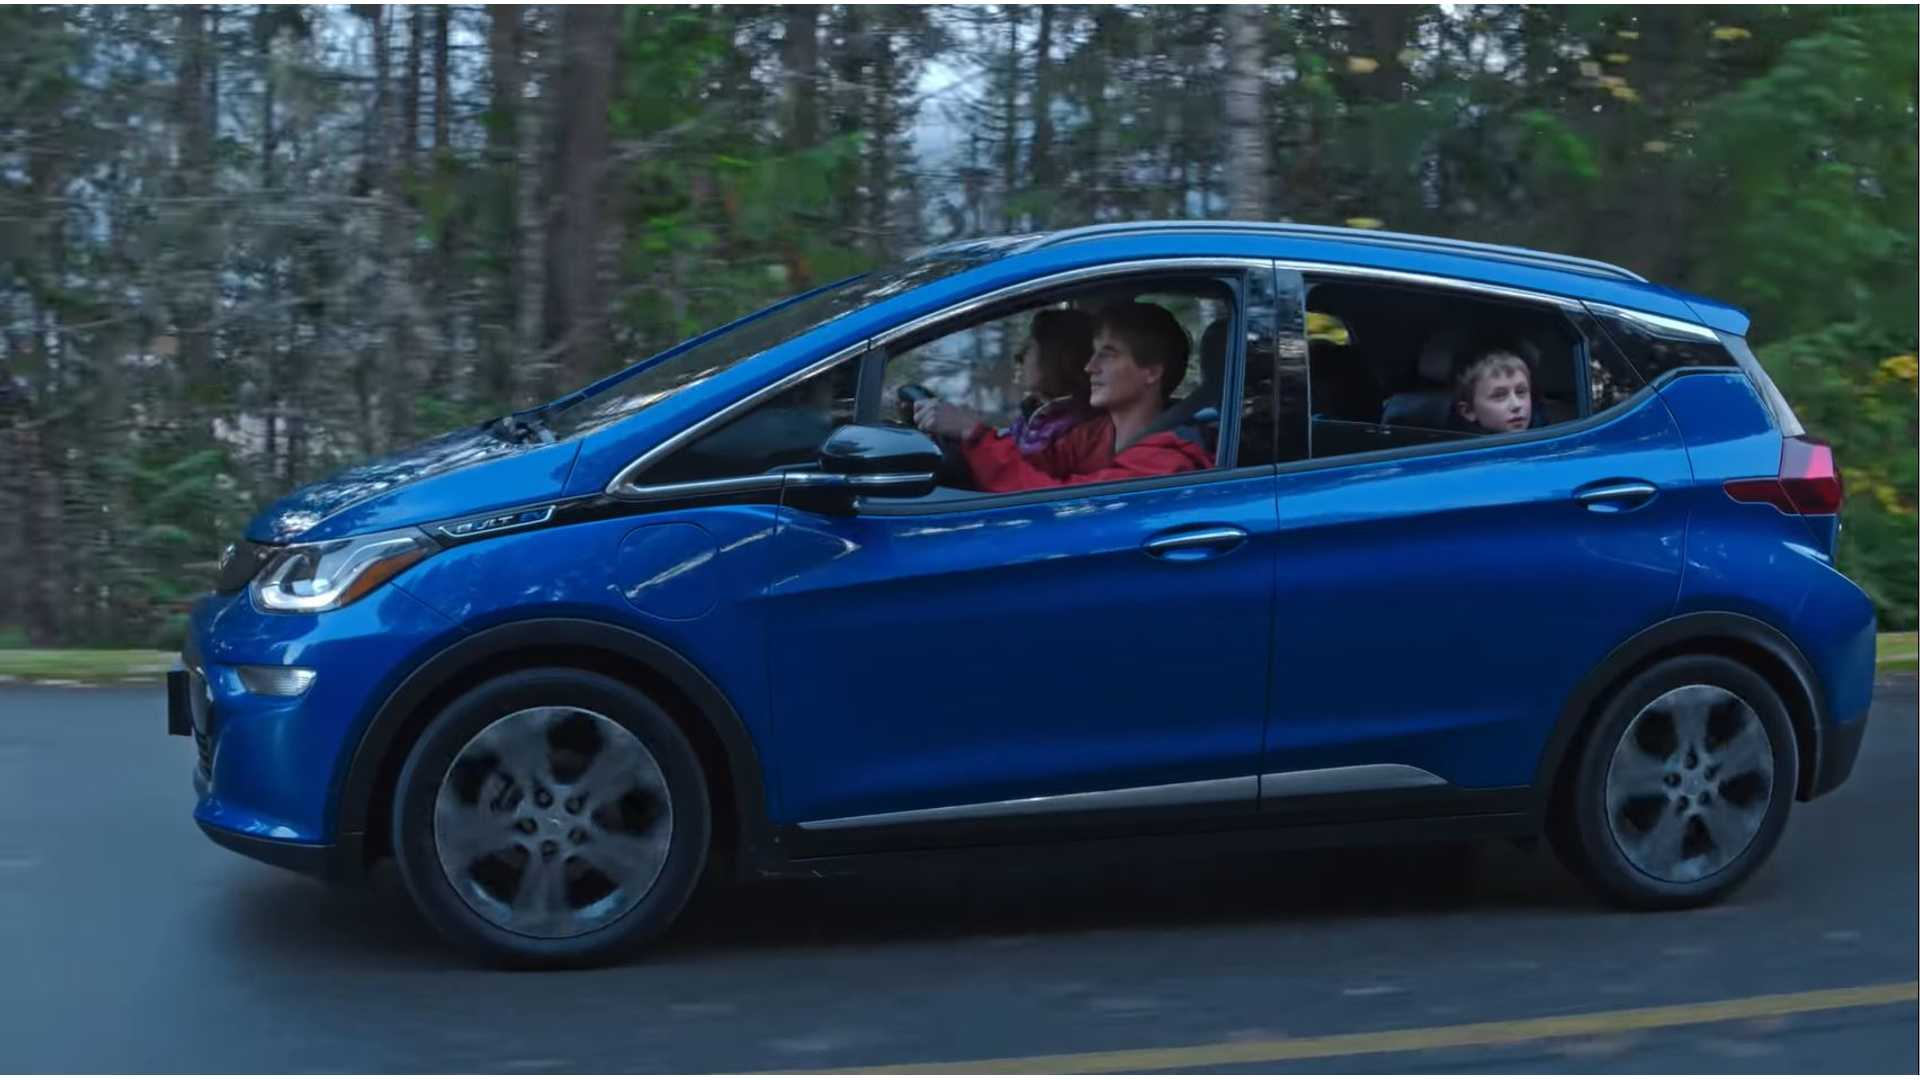 87 All New Chevrolet Volt 2019 Canada First Drive History for Chevrolet Volt 2019 Canada First Drive